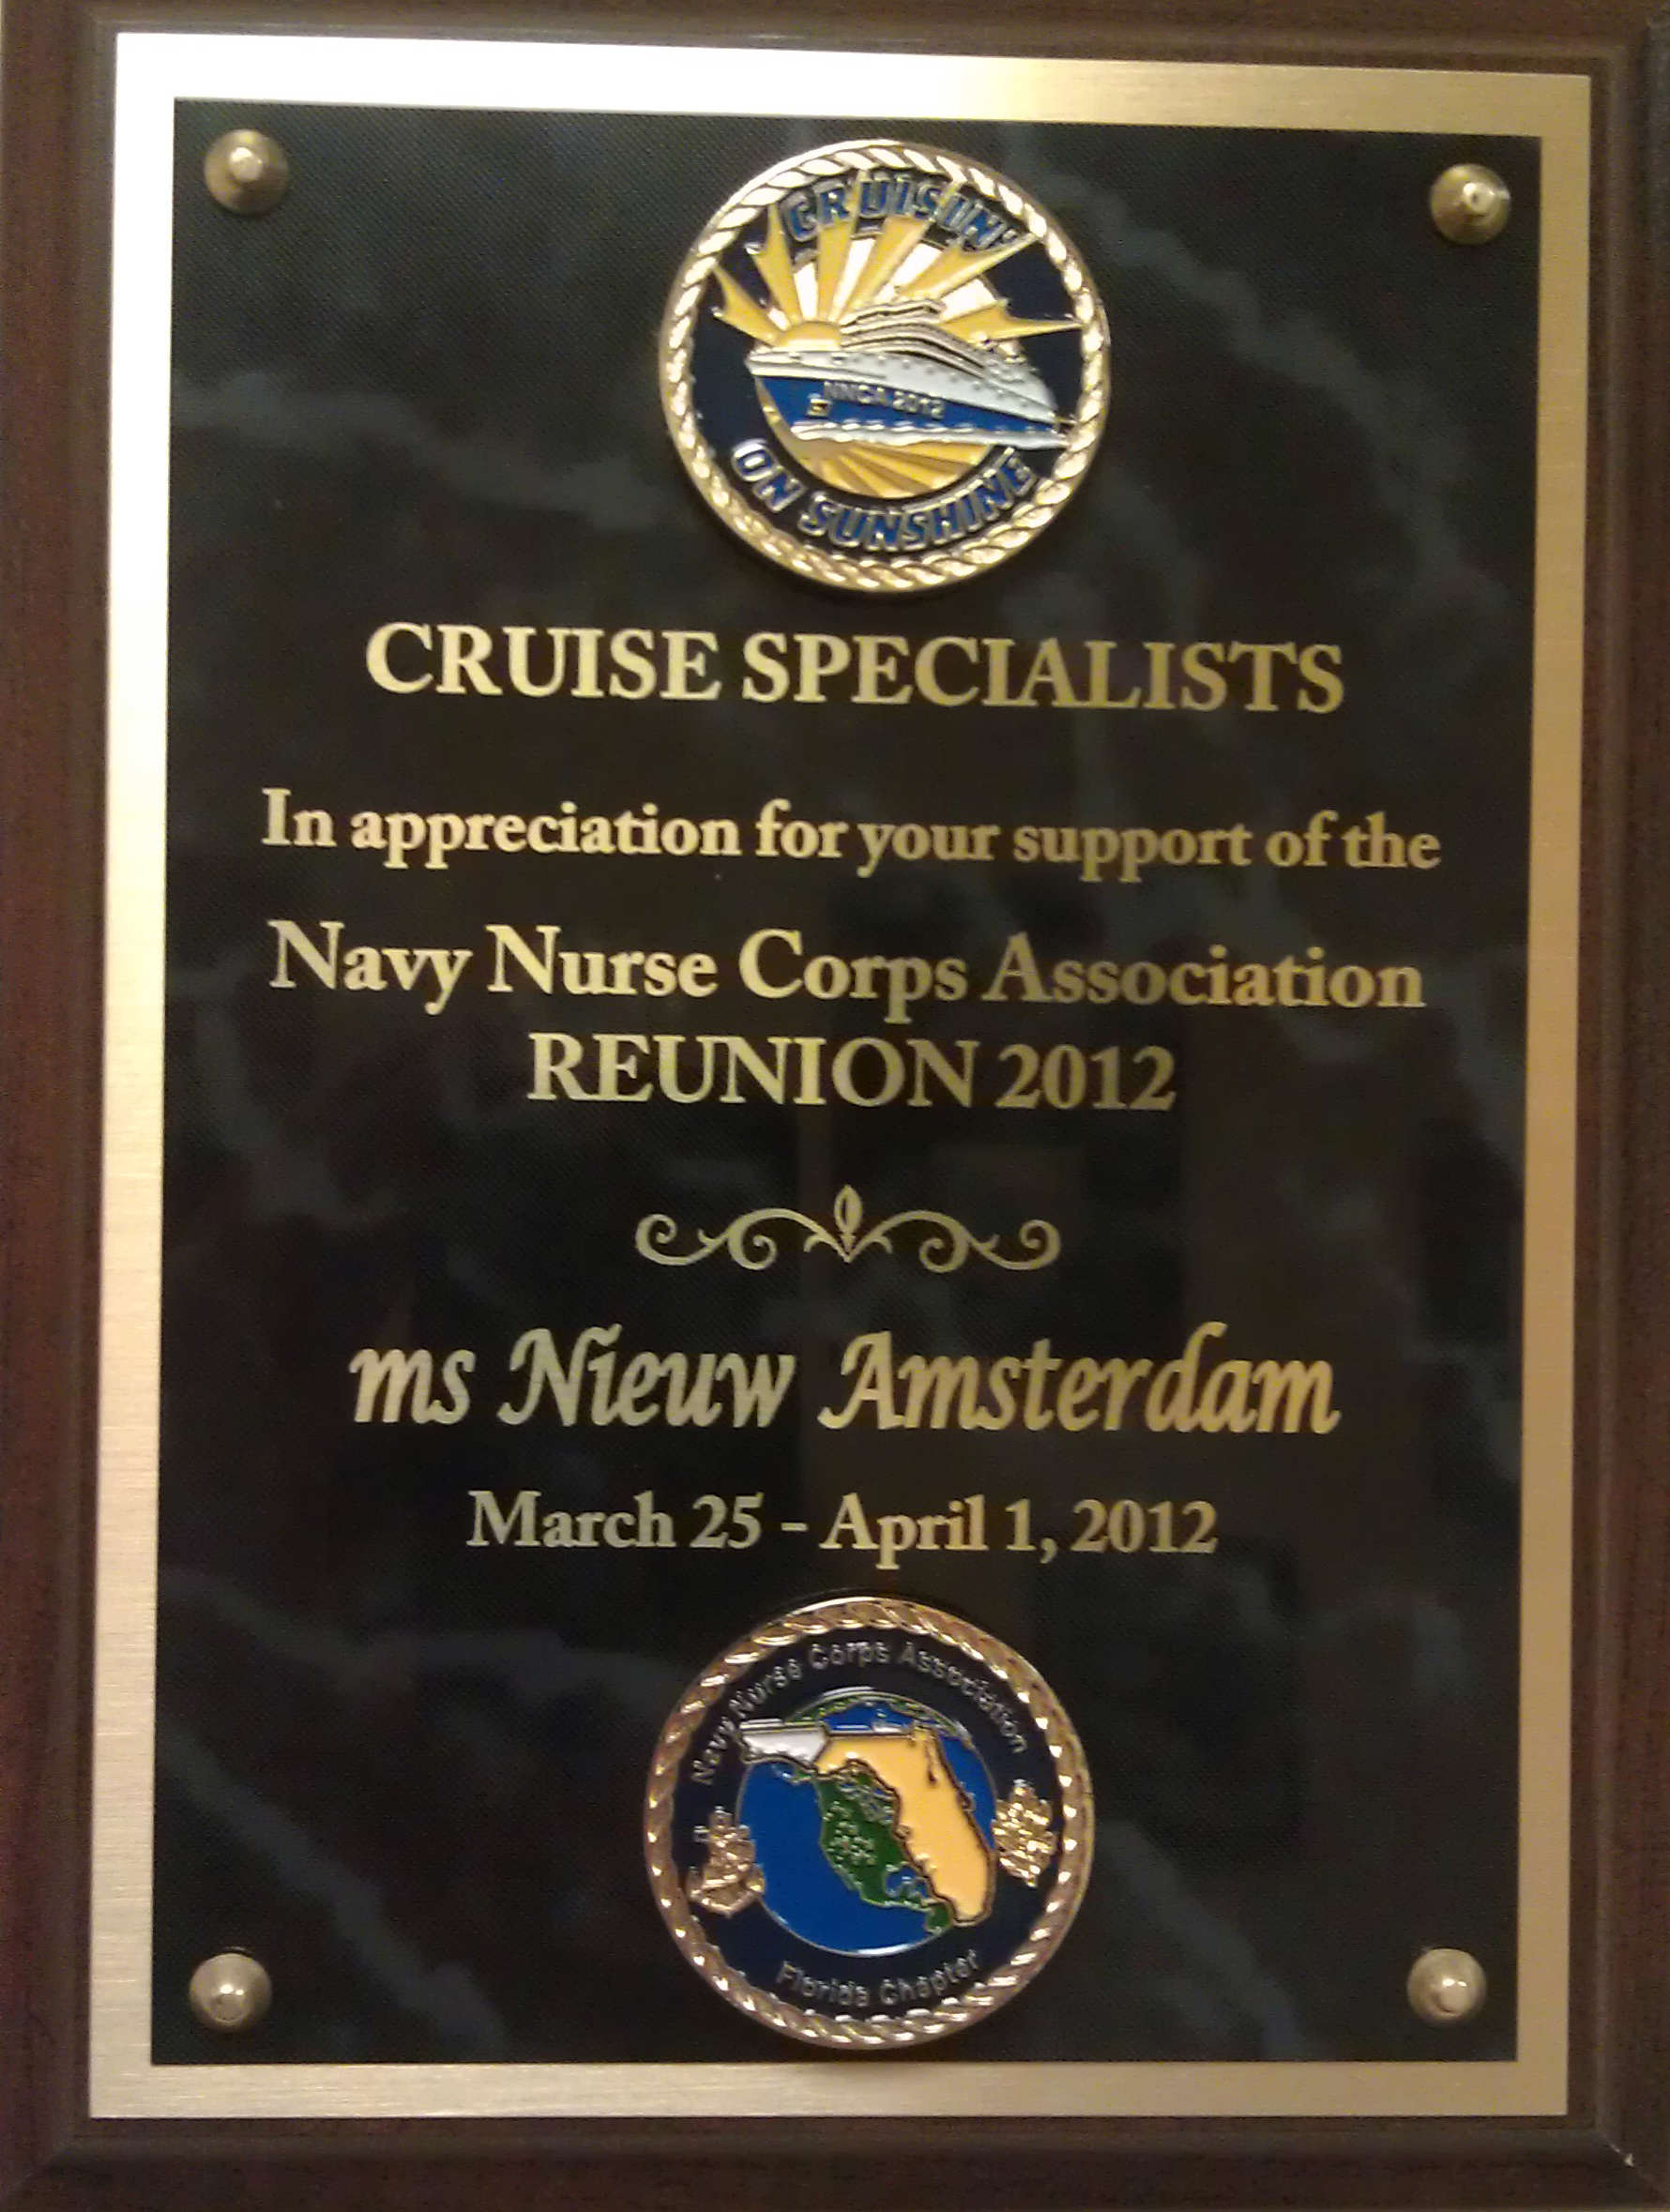 Plaque thanking Cruise Specialists team